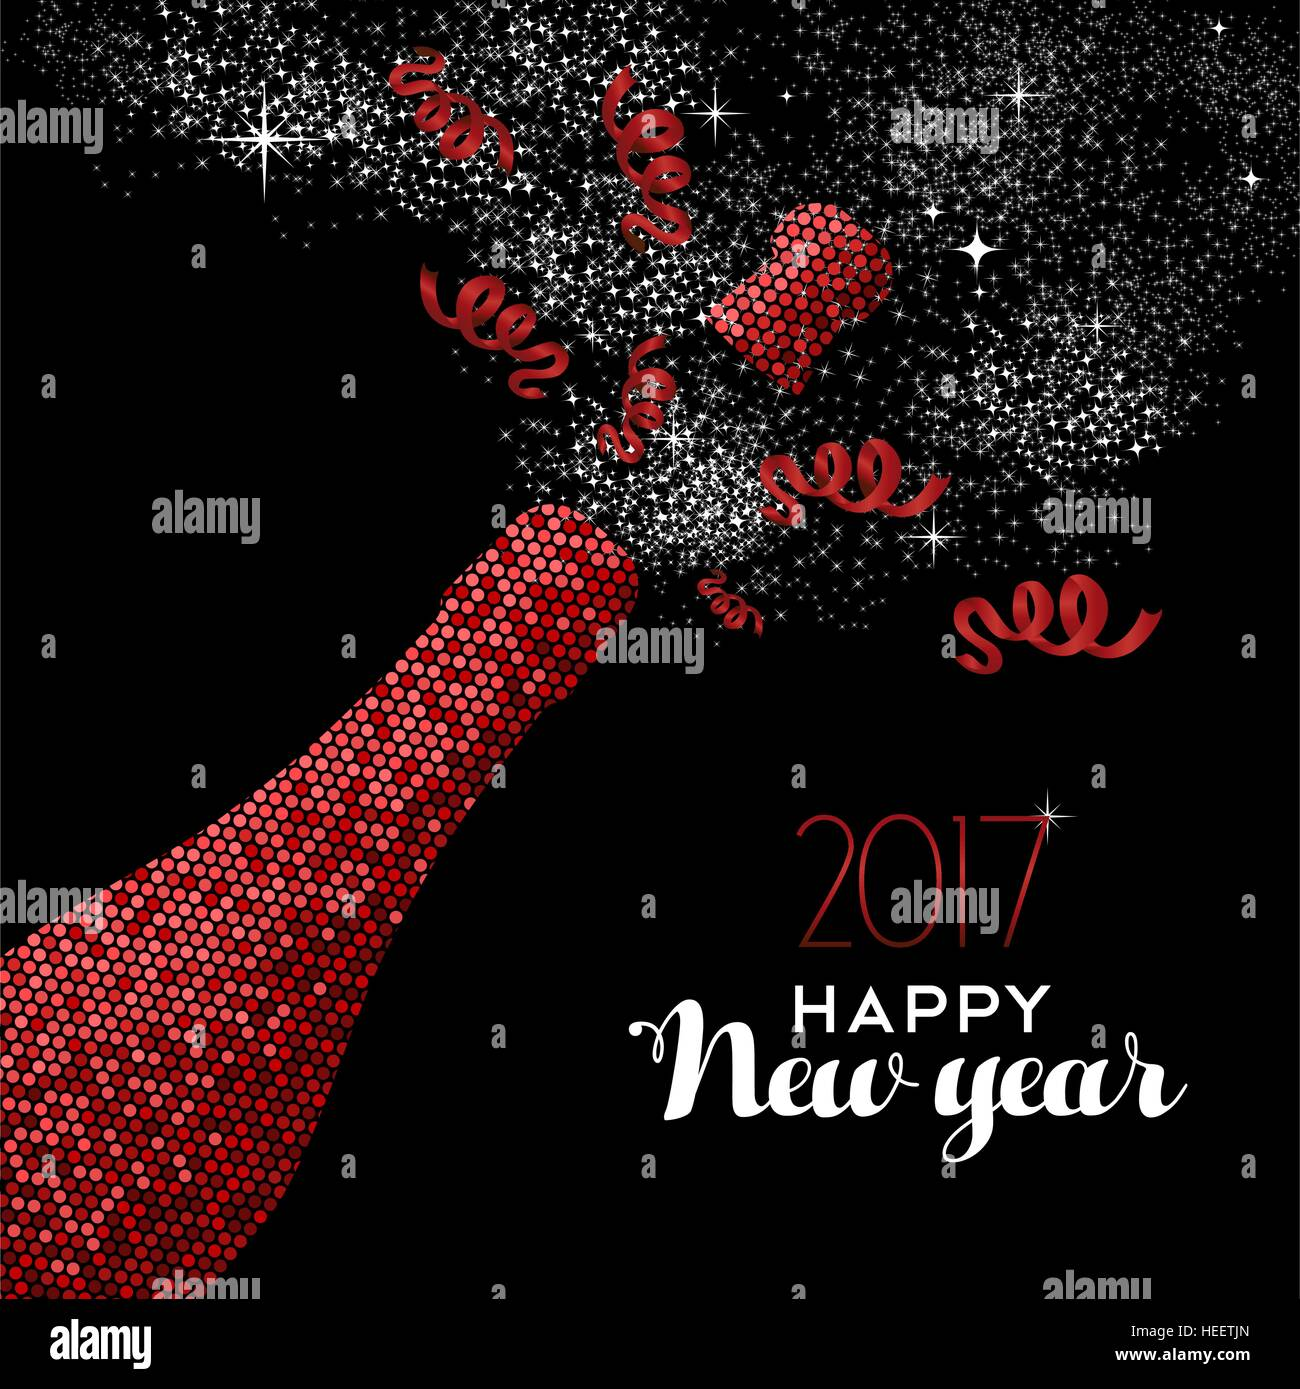 happy new year 2017 luxury red champagne bottle celebration in mosaic style ideal for holiday card or elegant party invitation eps10 vector